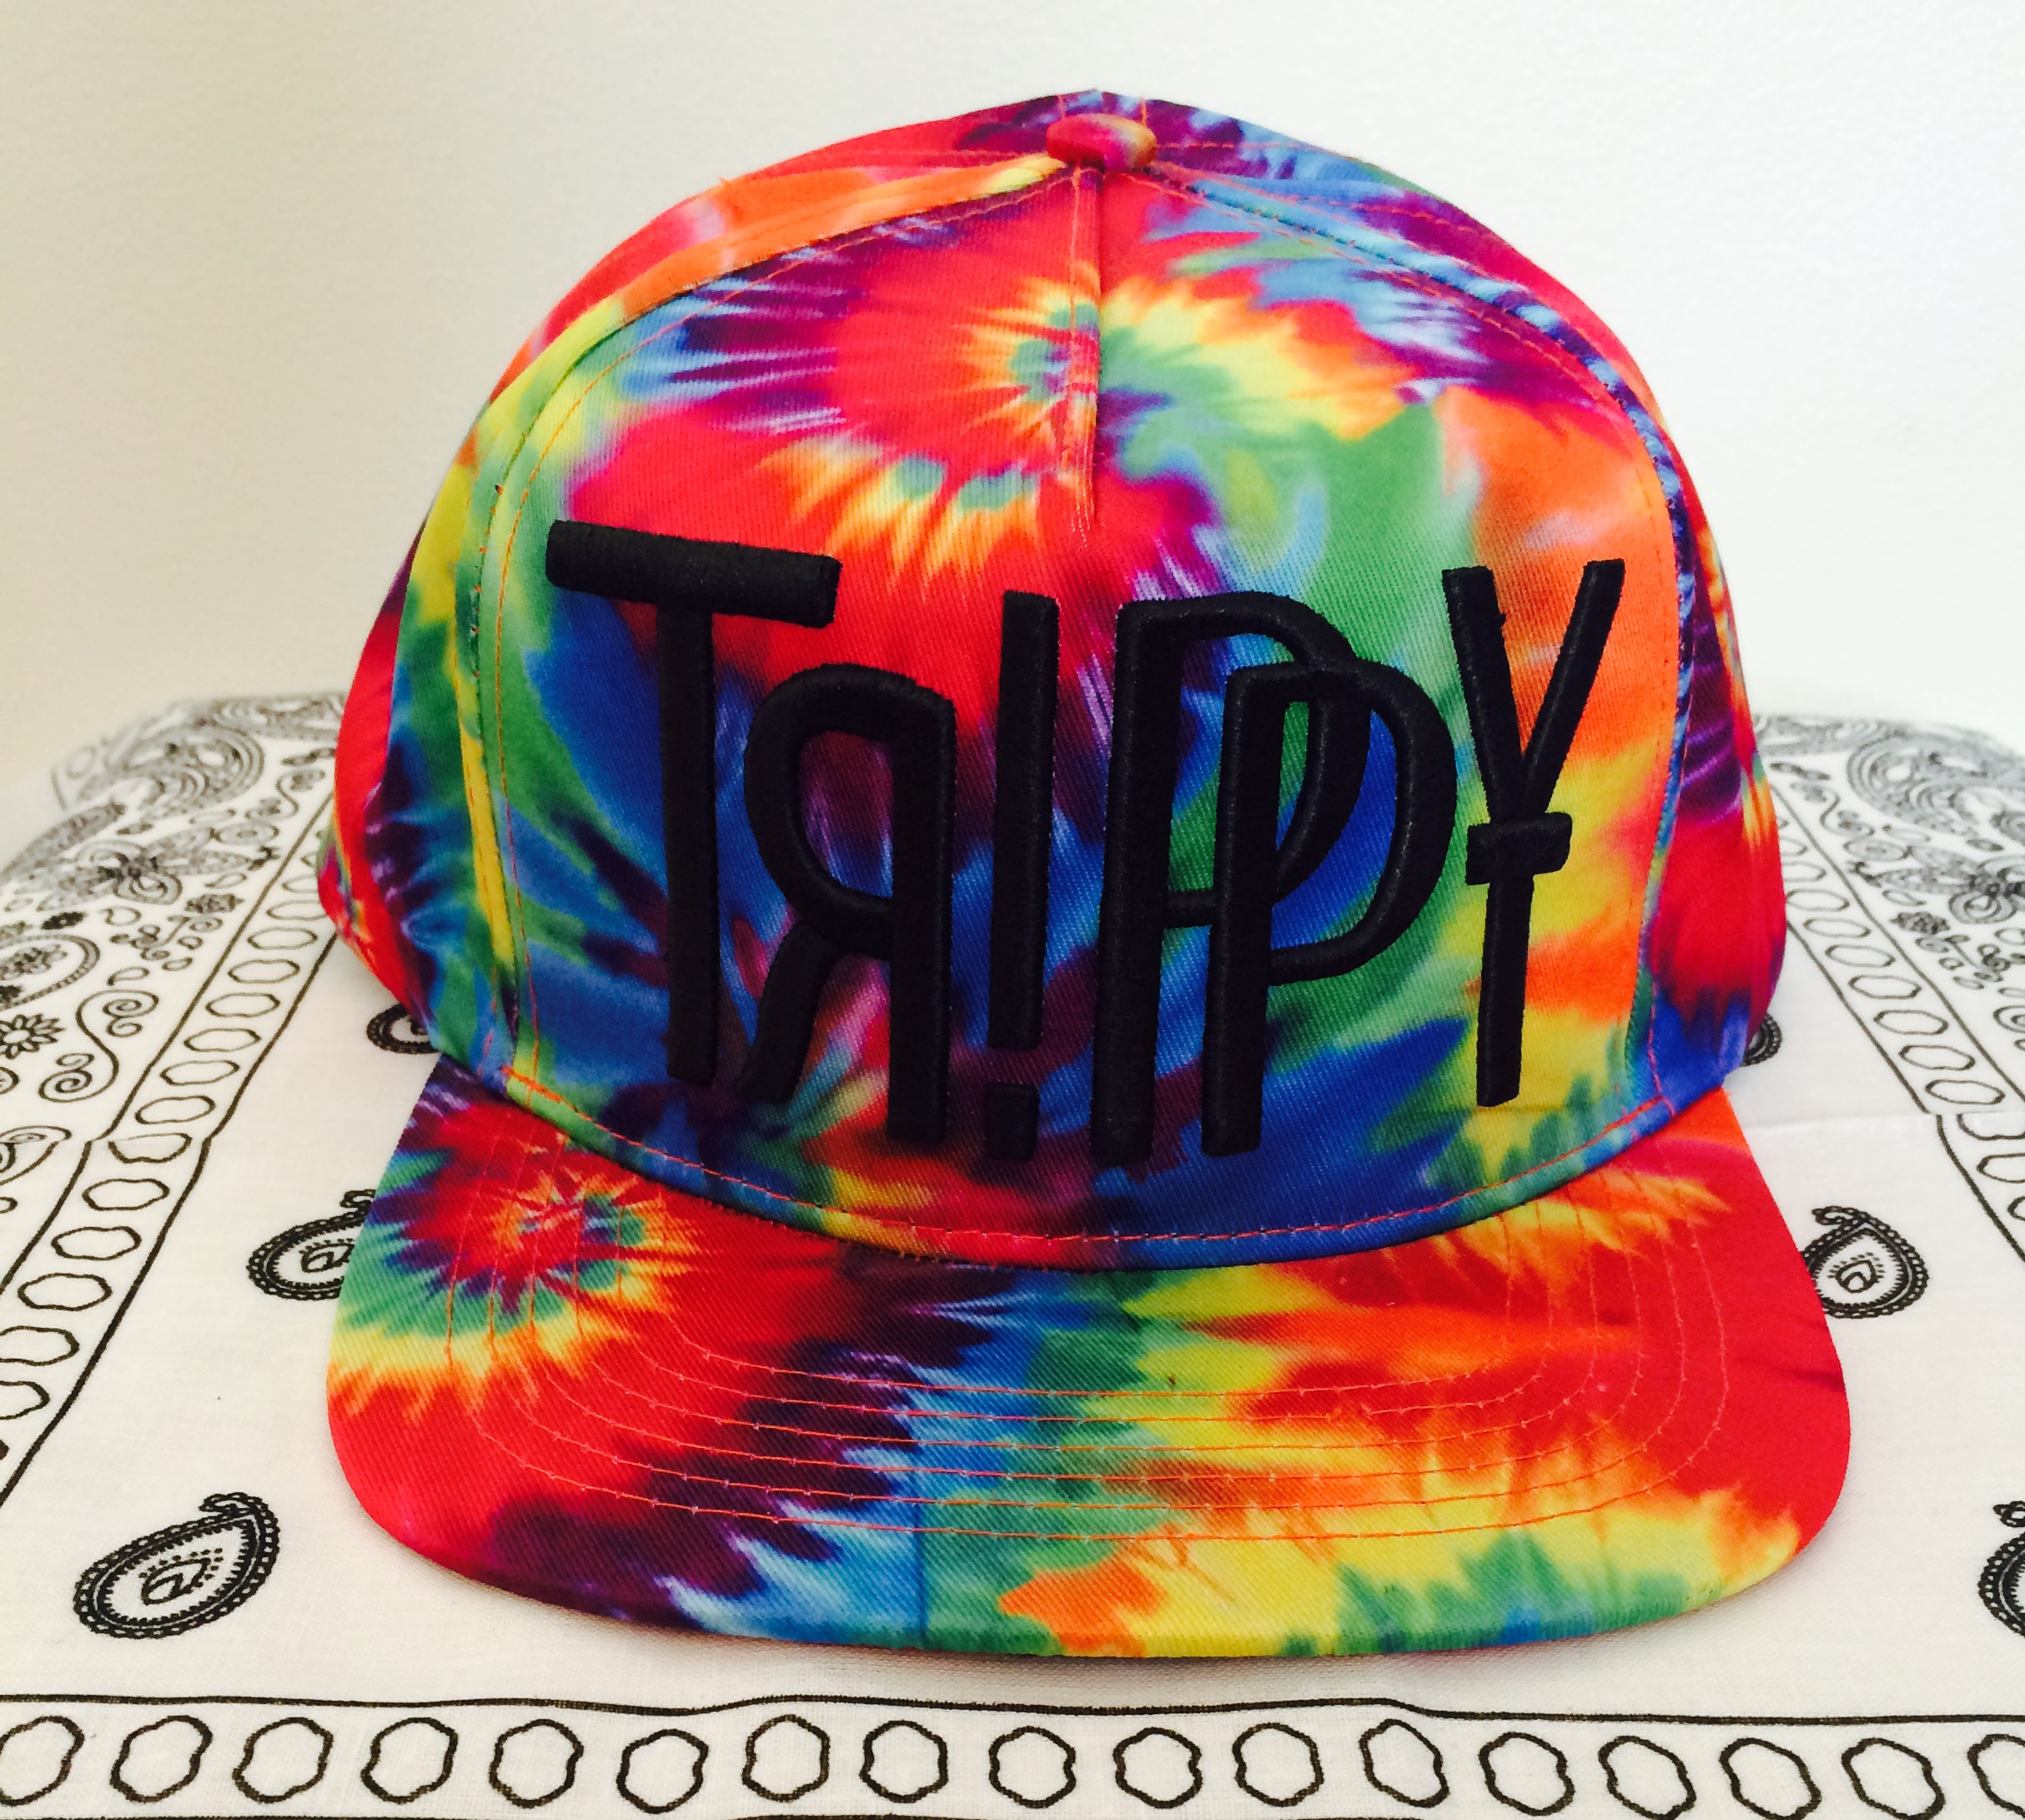 026848686 TRIPPY Snapback- limited edition from LURKER APPAREL